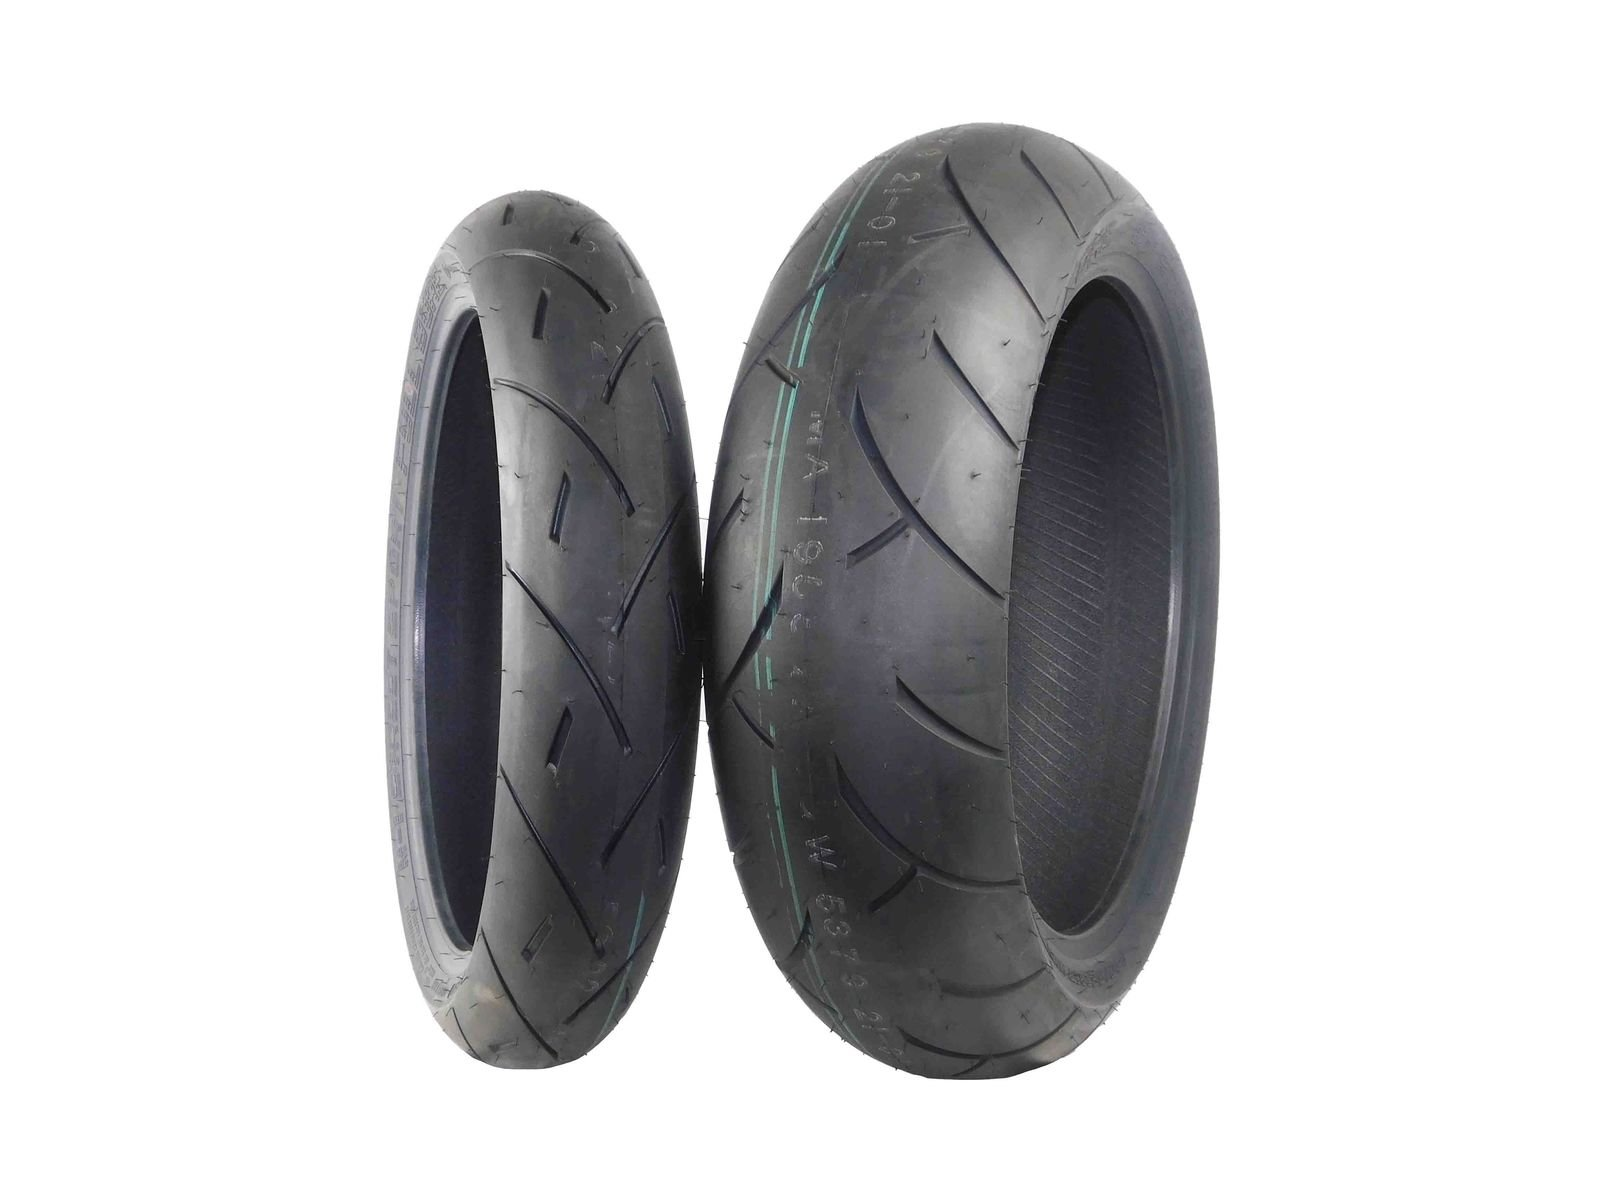 Full Bore M1 Sport Bike Tire set (1 Front 120/70ZR17 & 1 Rear 160/60ZR17) Tires pair 120/70-17 160/60-17